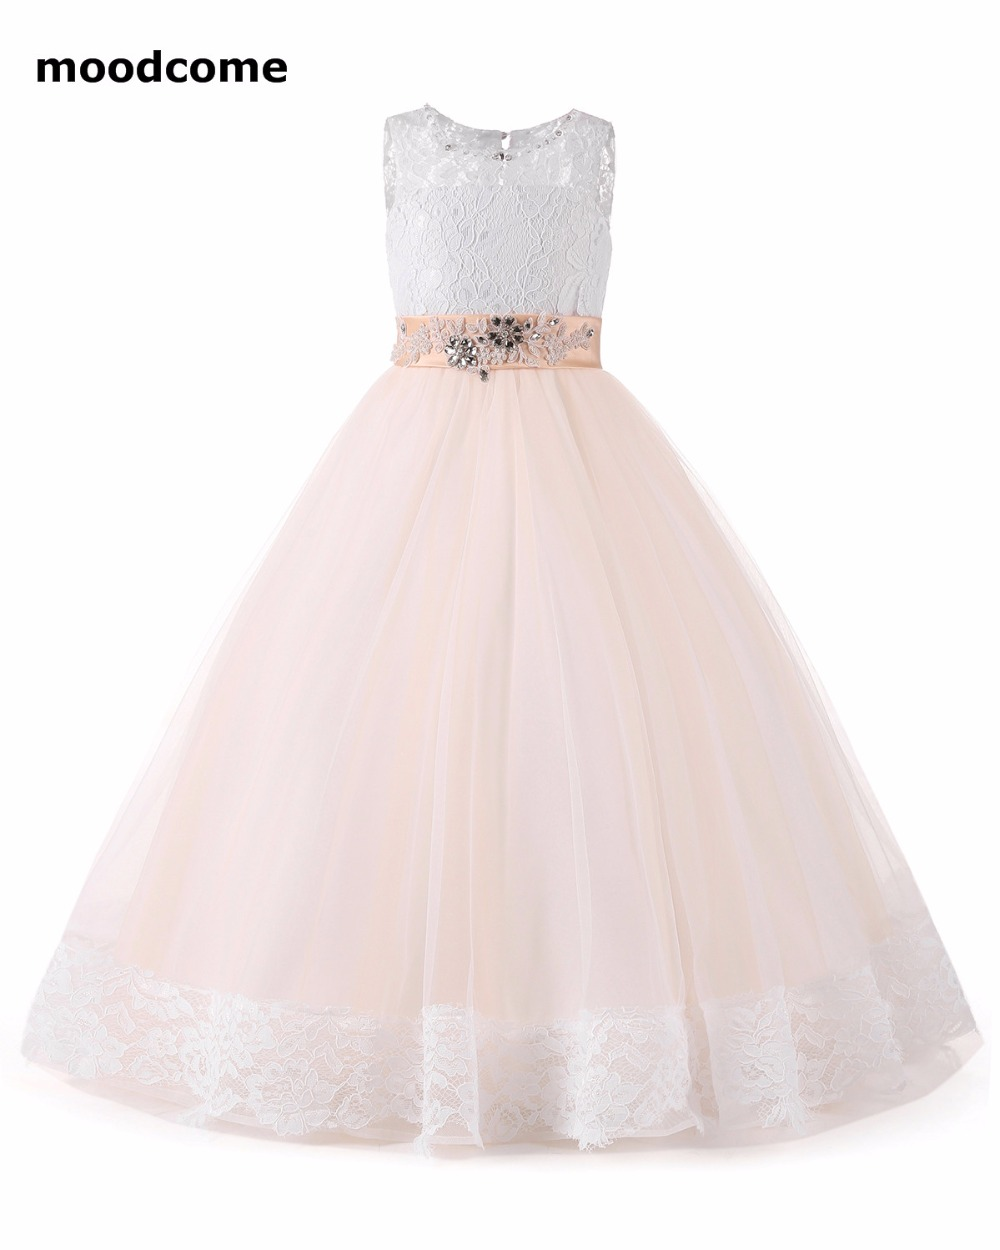 2018 New Cheap Flower Girl Dresses Floor Length Tulle Applique Sash